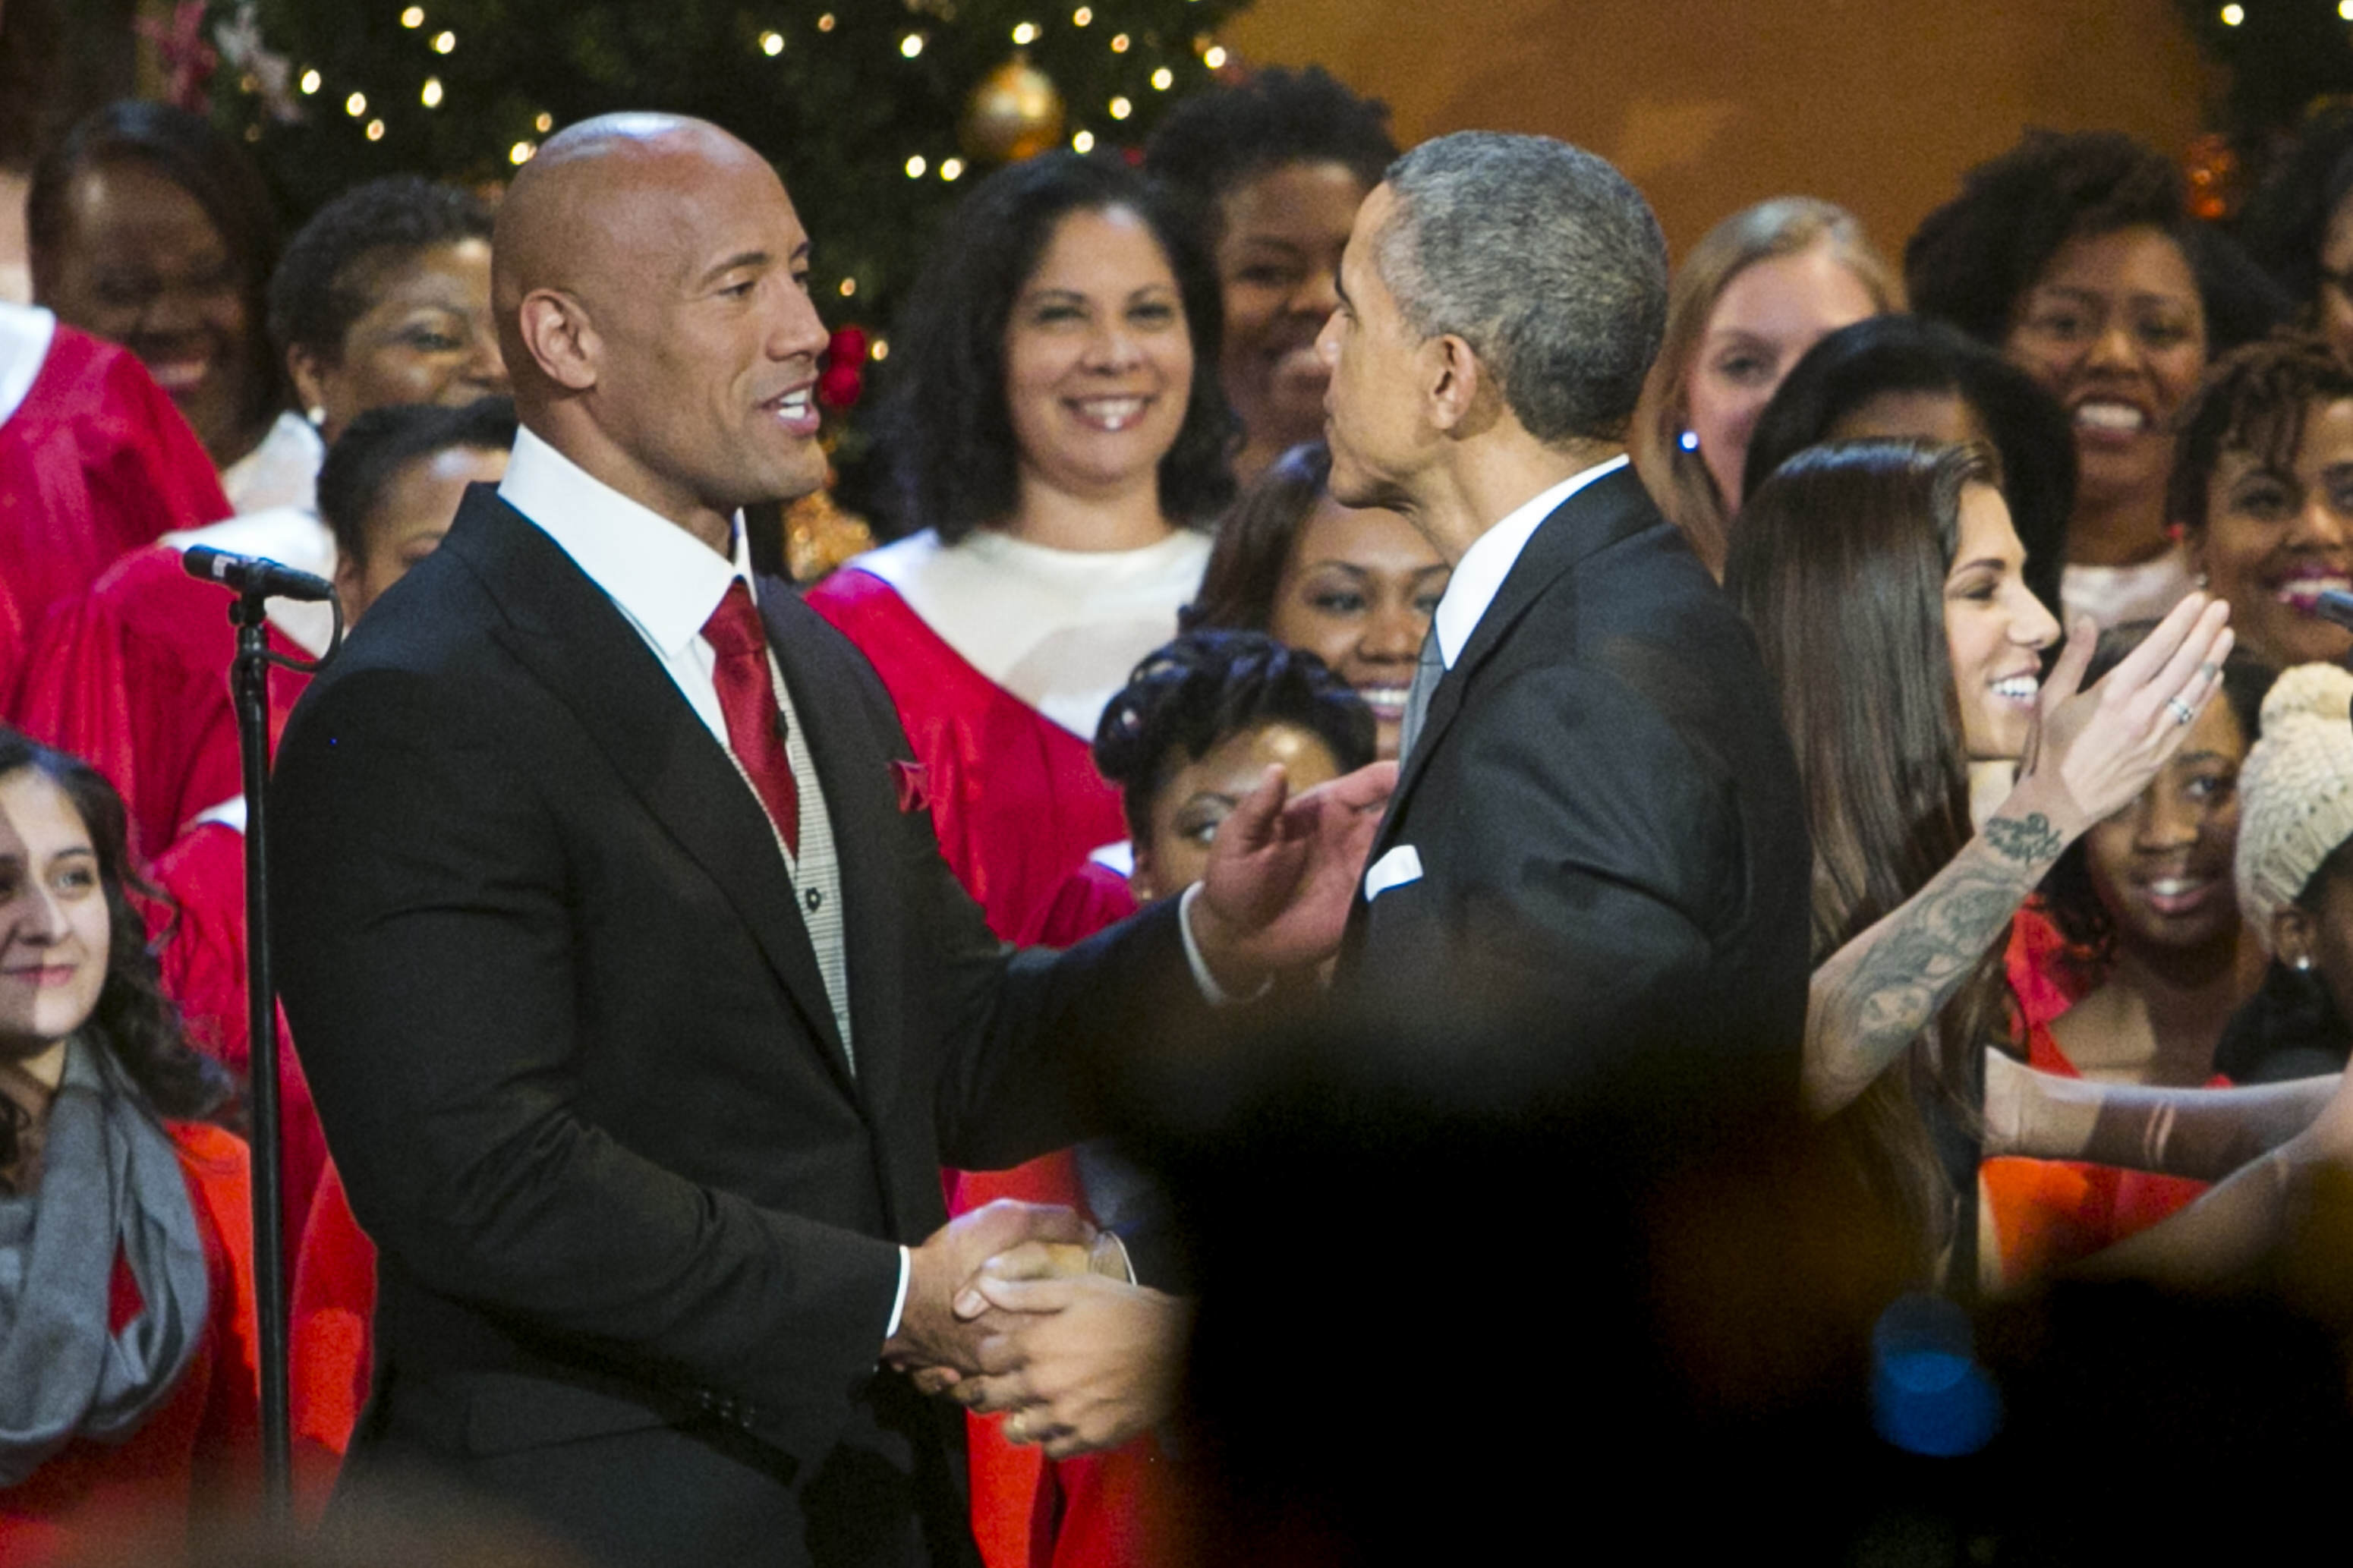 The Rock Considers Running For President, World Rejoices GettyImages 460472958